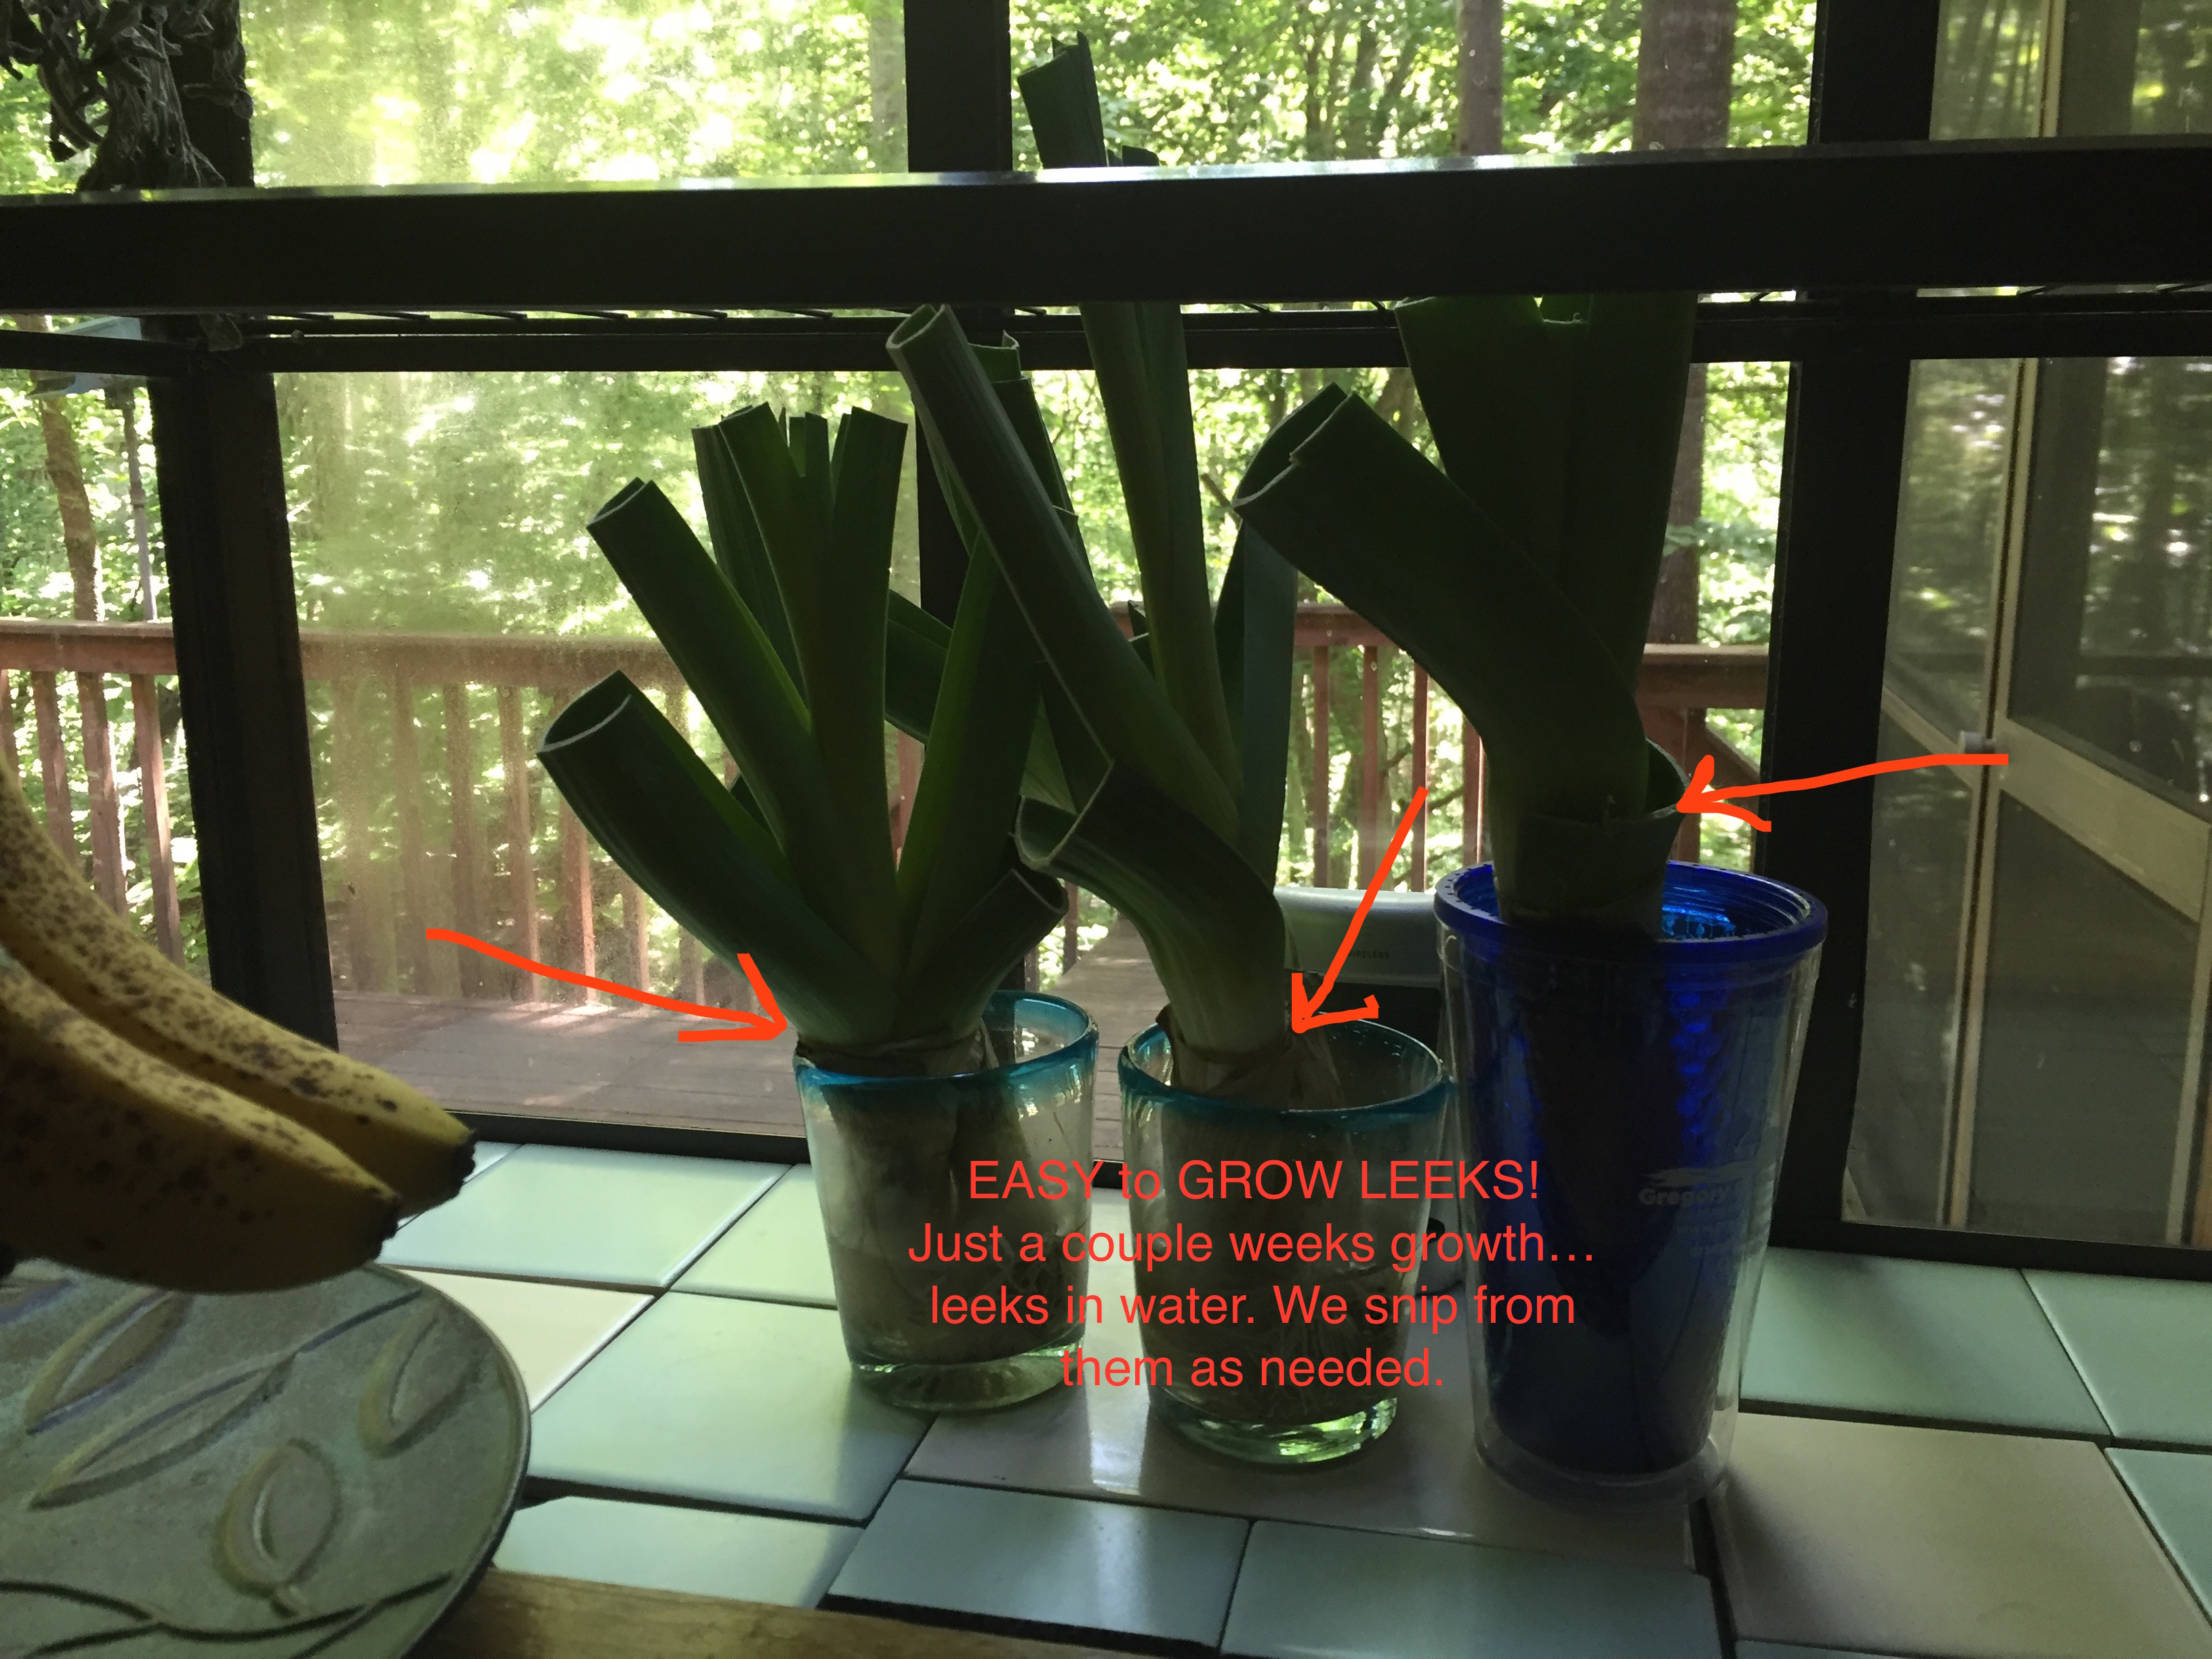 leeks grow fast, regrow leeks in water